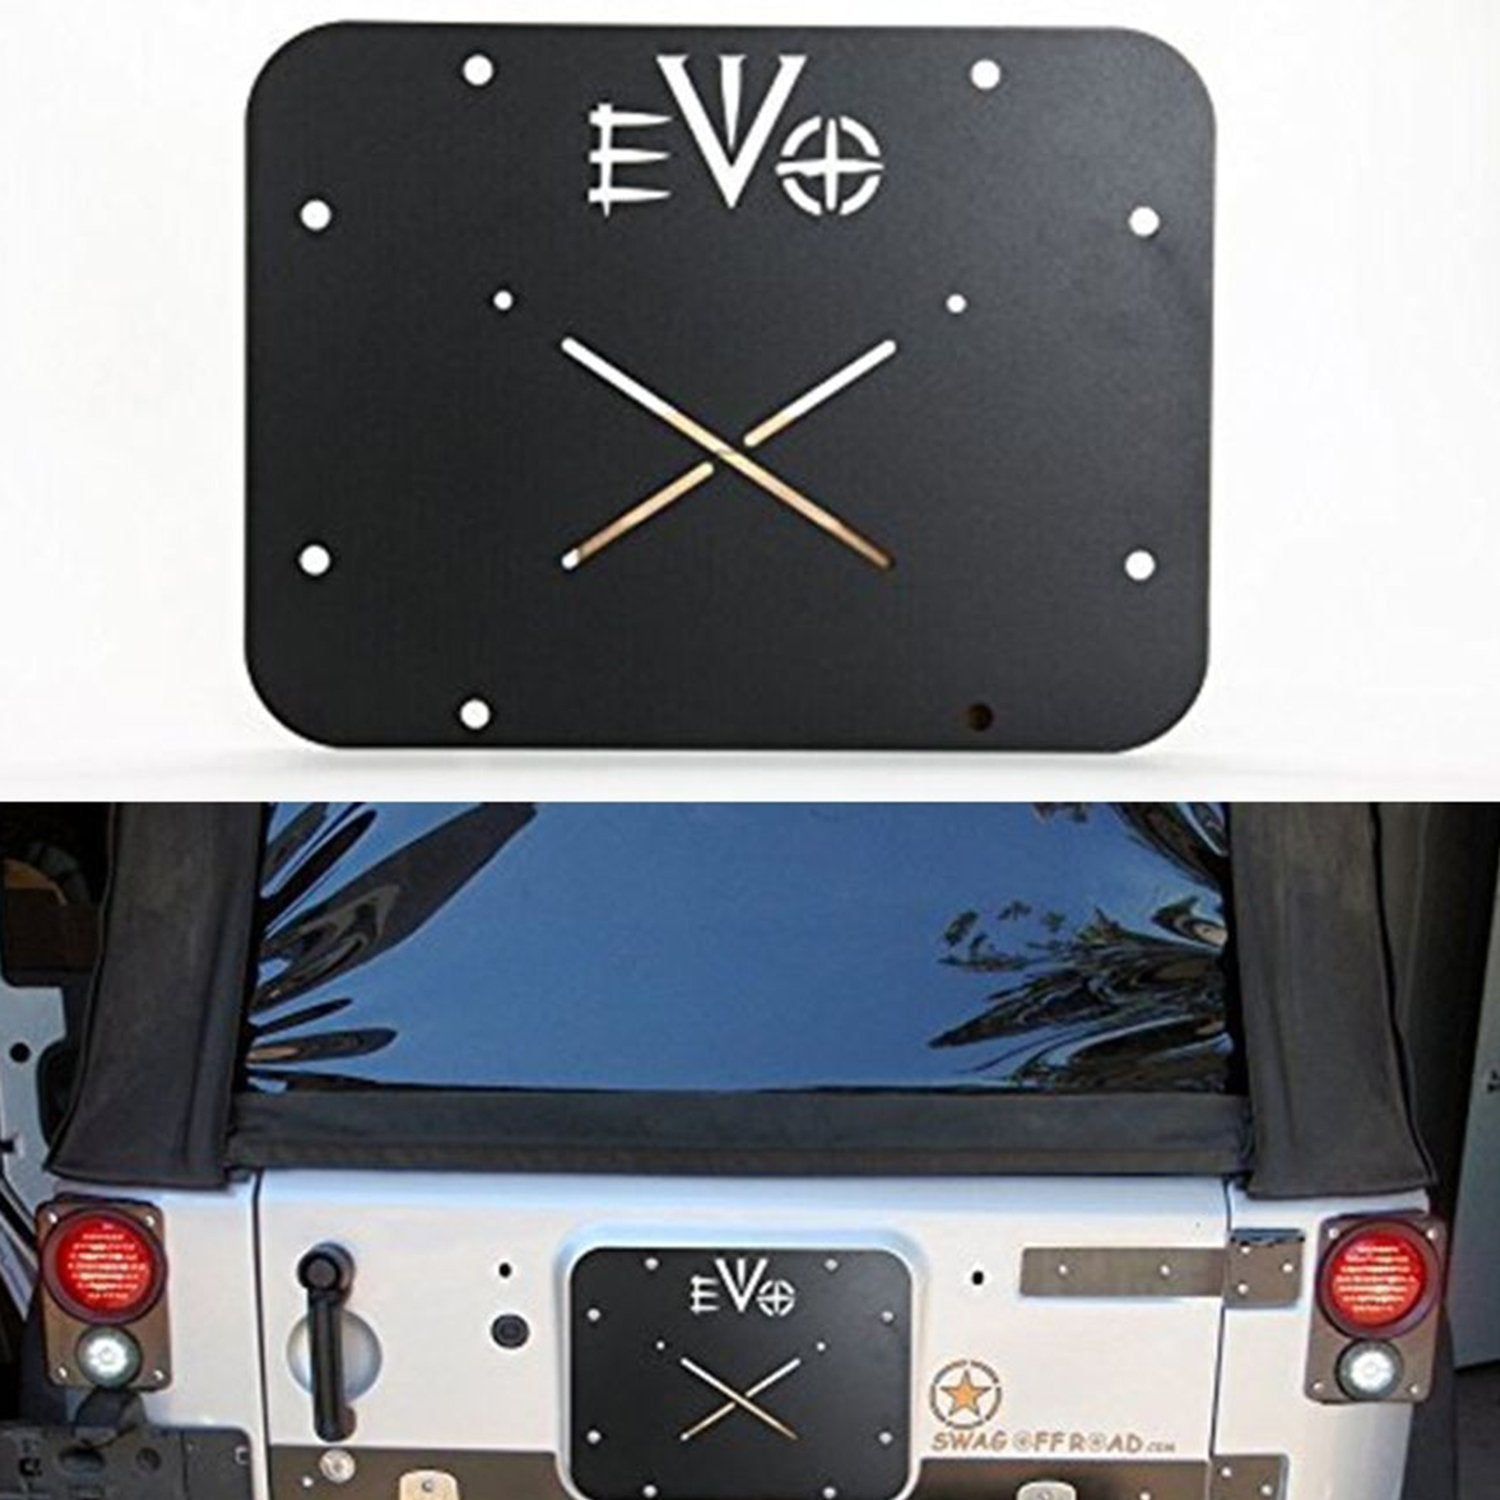 Steel EVO Tailgate Vent Plate Cover for 07-18 Jeep JK